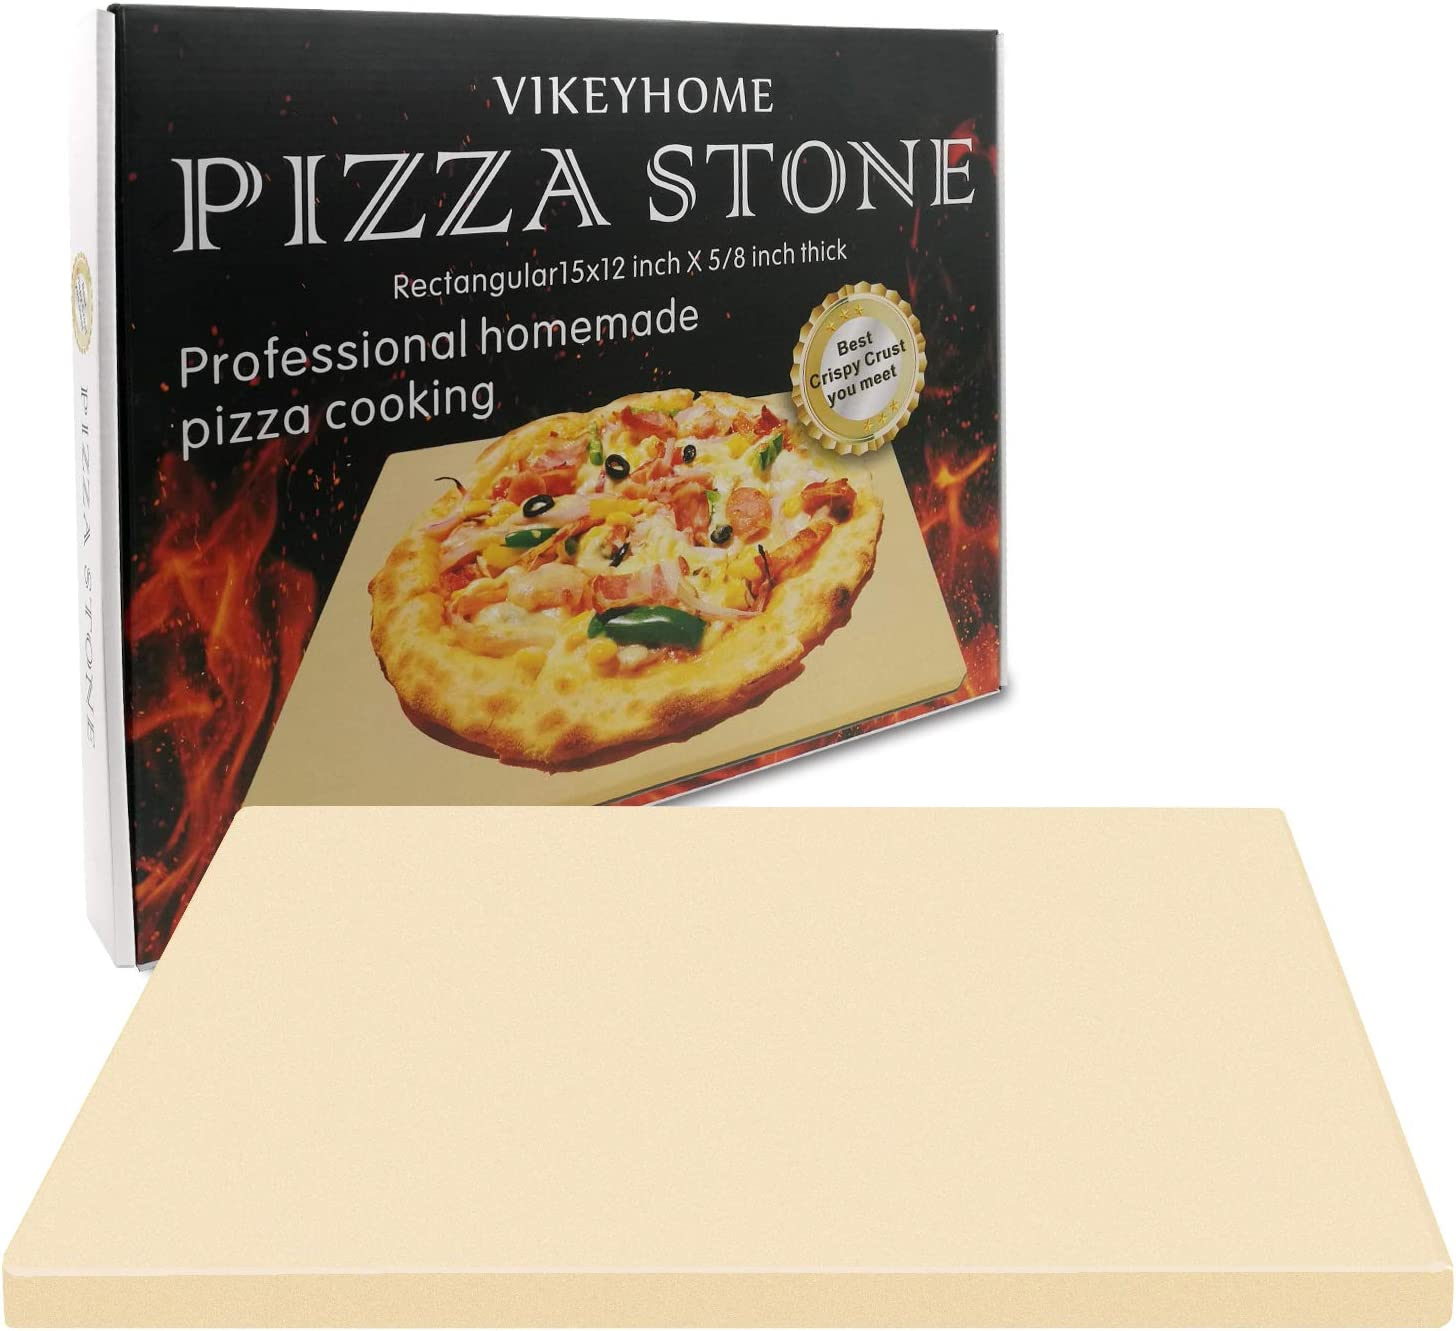 VIKEYHOME Pizza Stone, Heavy Duty Cordierite Pizza Grilling Stone,Baking Stone, Pizza Pan, Perfect for Oven, BBQ and Grill, Thermal Shock Resistant, Durable and Safe, Rectangular, 15x12 Inch, 7Lbs